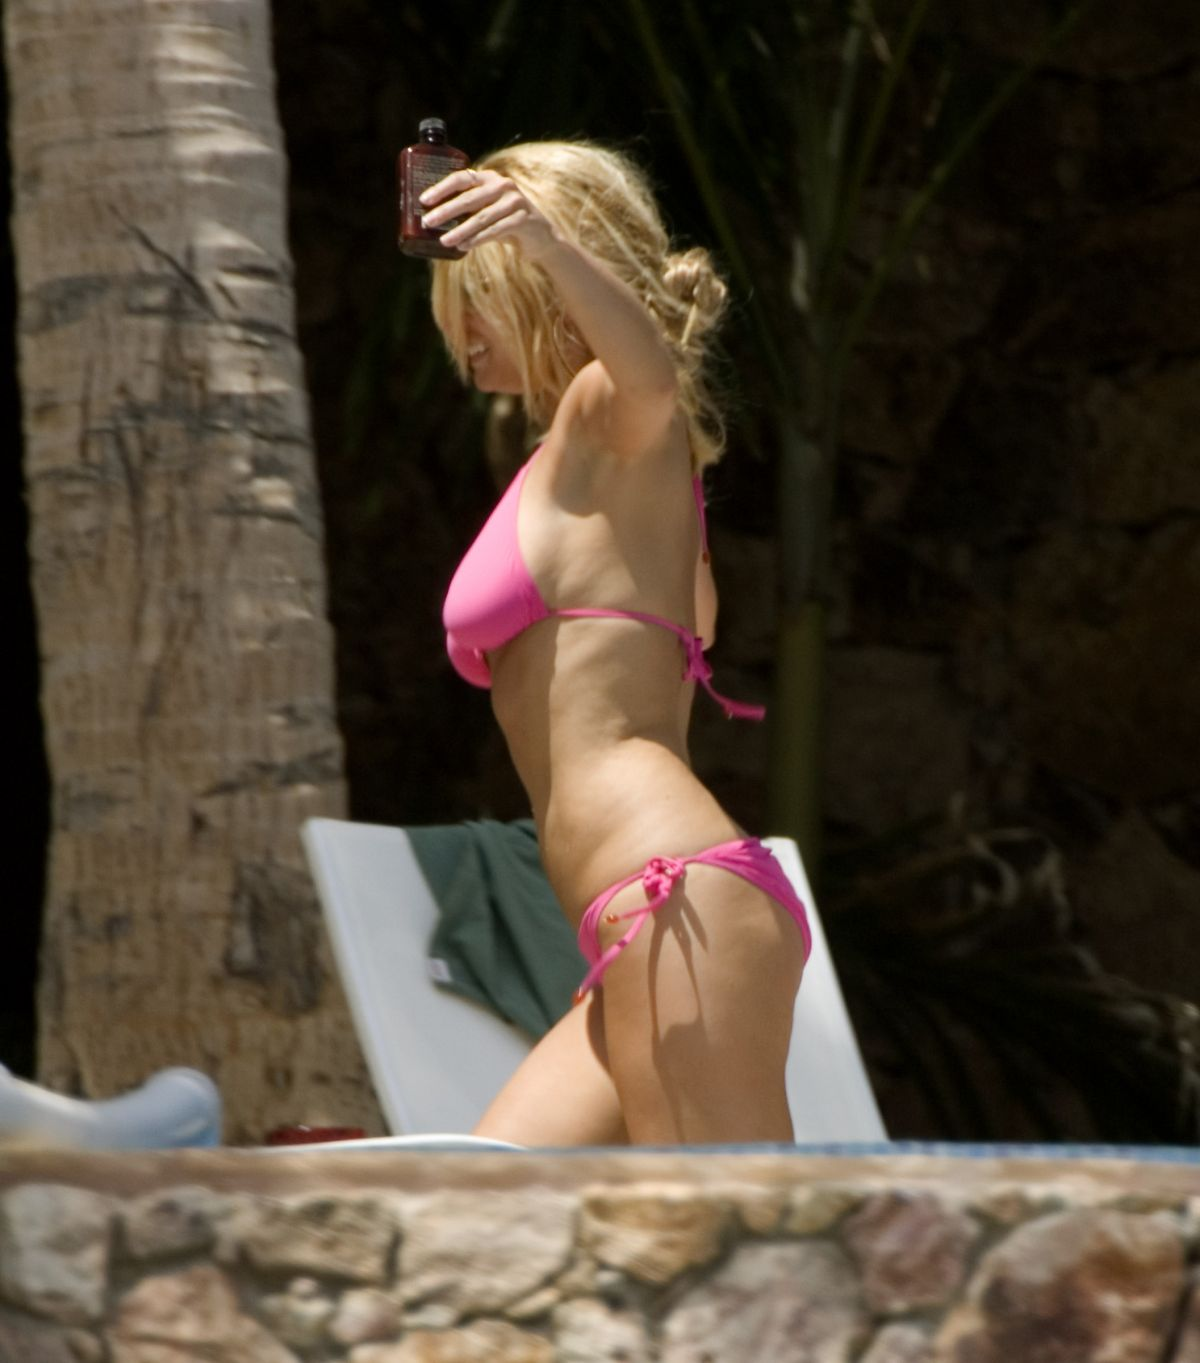 f1b3d4d799 the-best-from-past-jessica-simpson-in-bikini -at-a-pool-in-cabo-san-lucas-11-07-2006_12